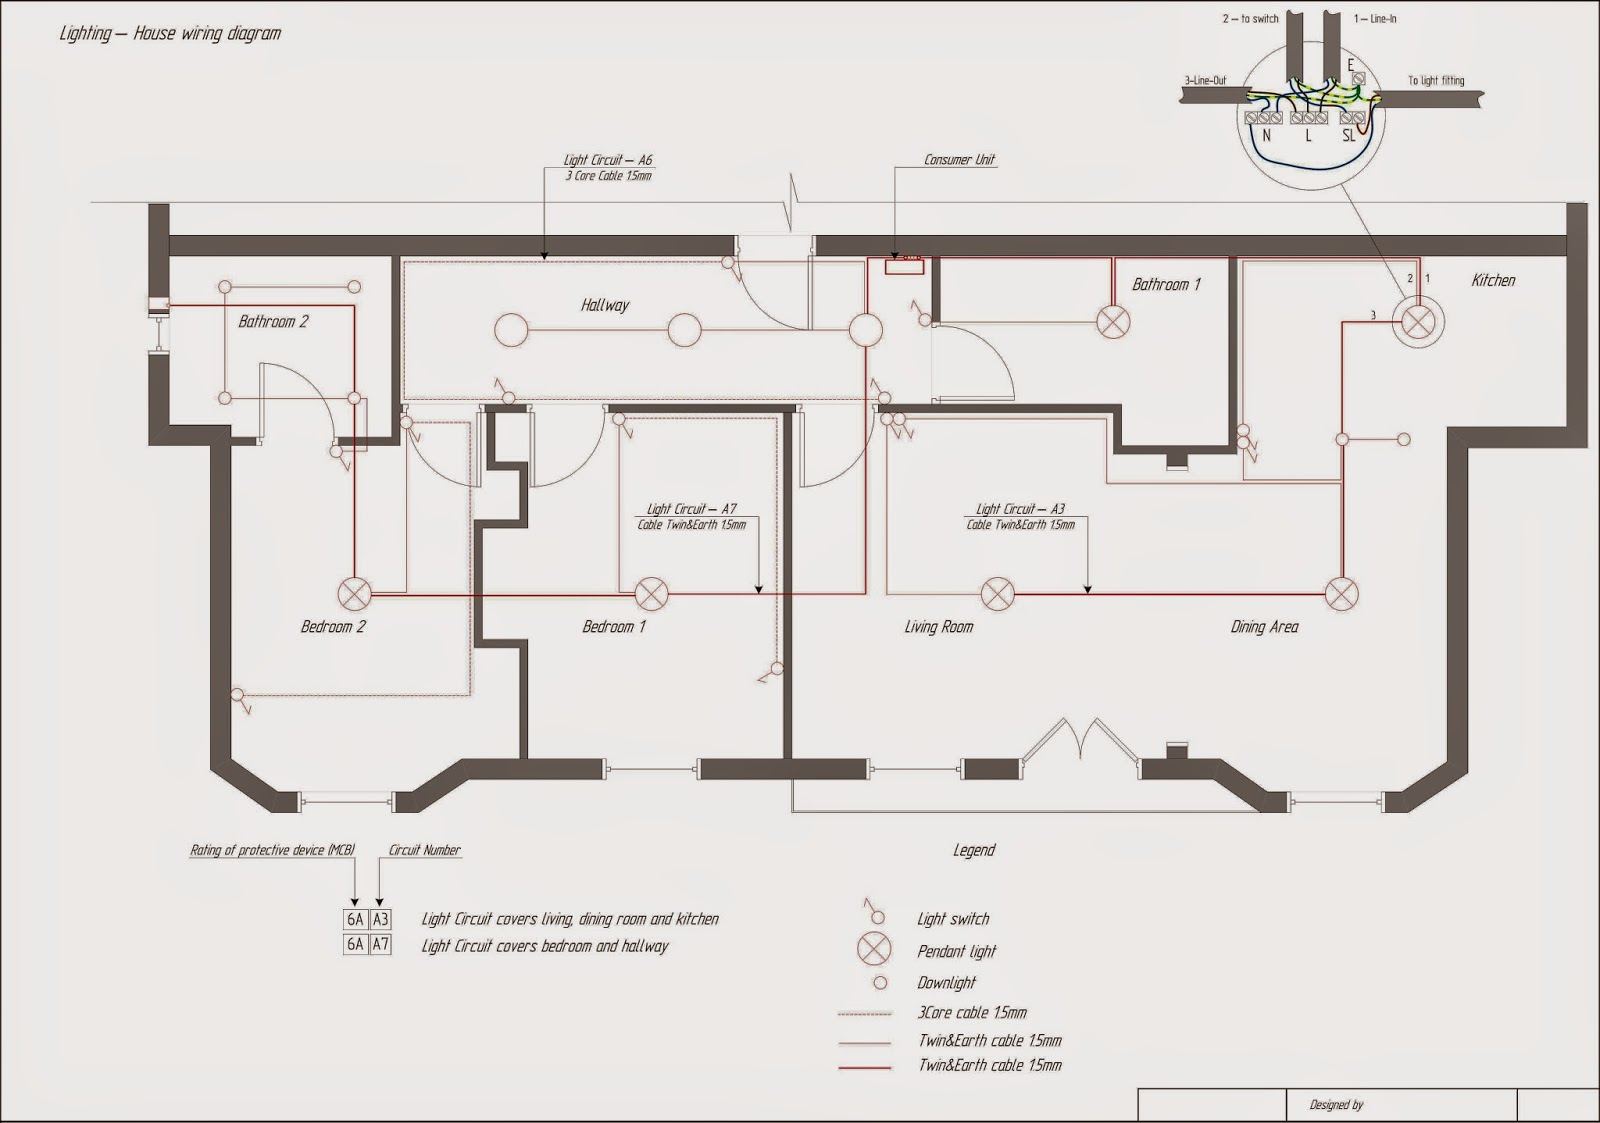 Sony Xav-Ax100 Wiring Diagram from 4.bp.blogspot.com